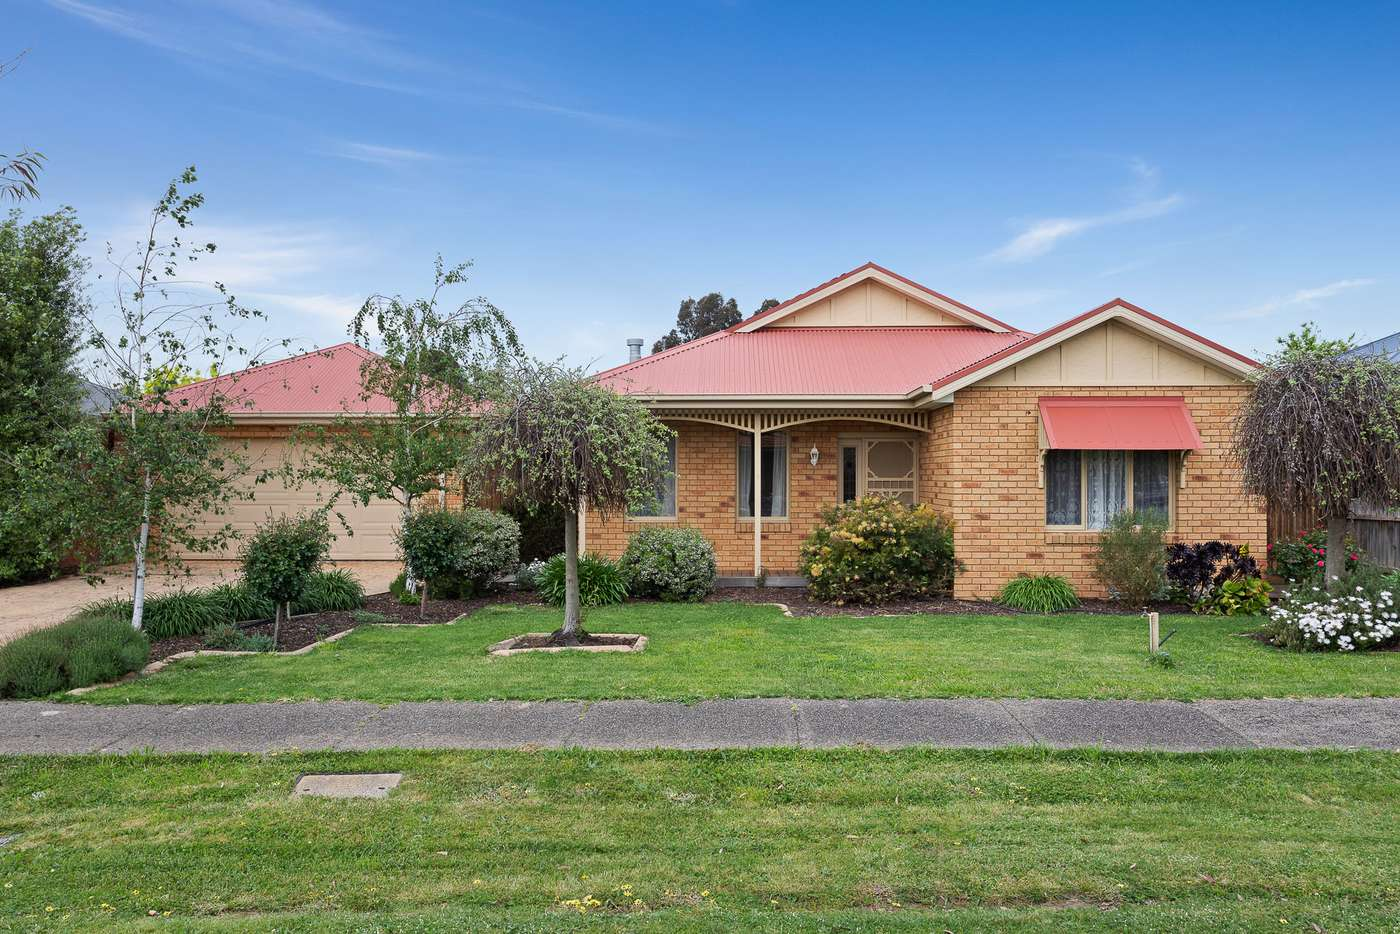 Main view of Homely house listing, 10 Oakridge Street, Doreen VIC 3754